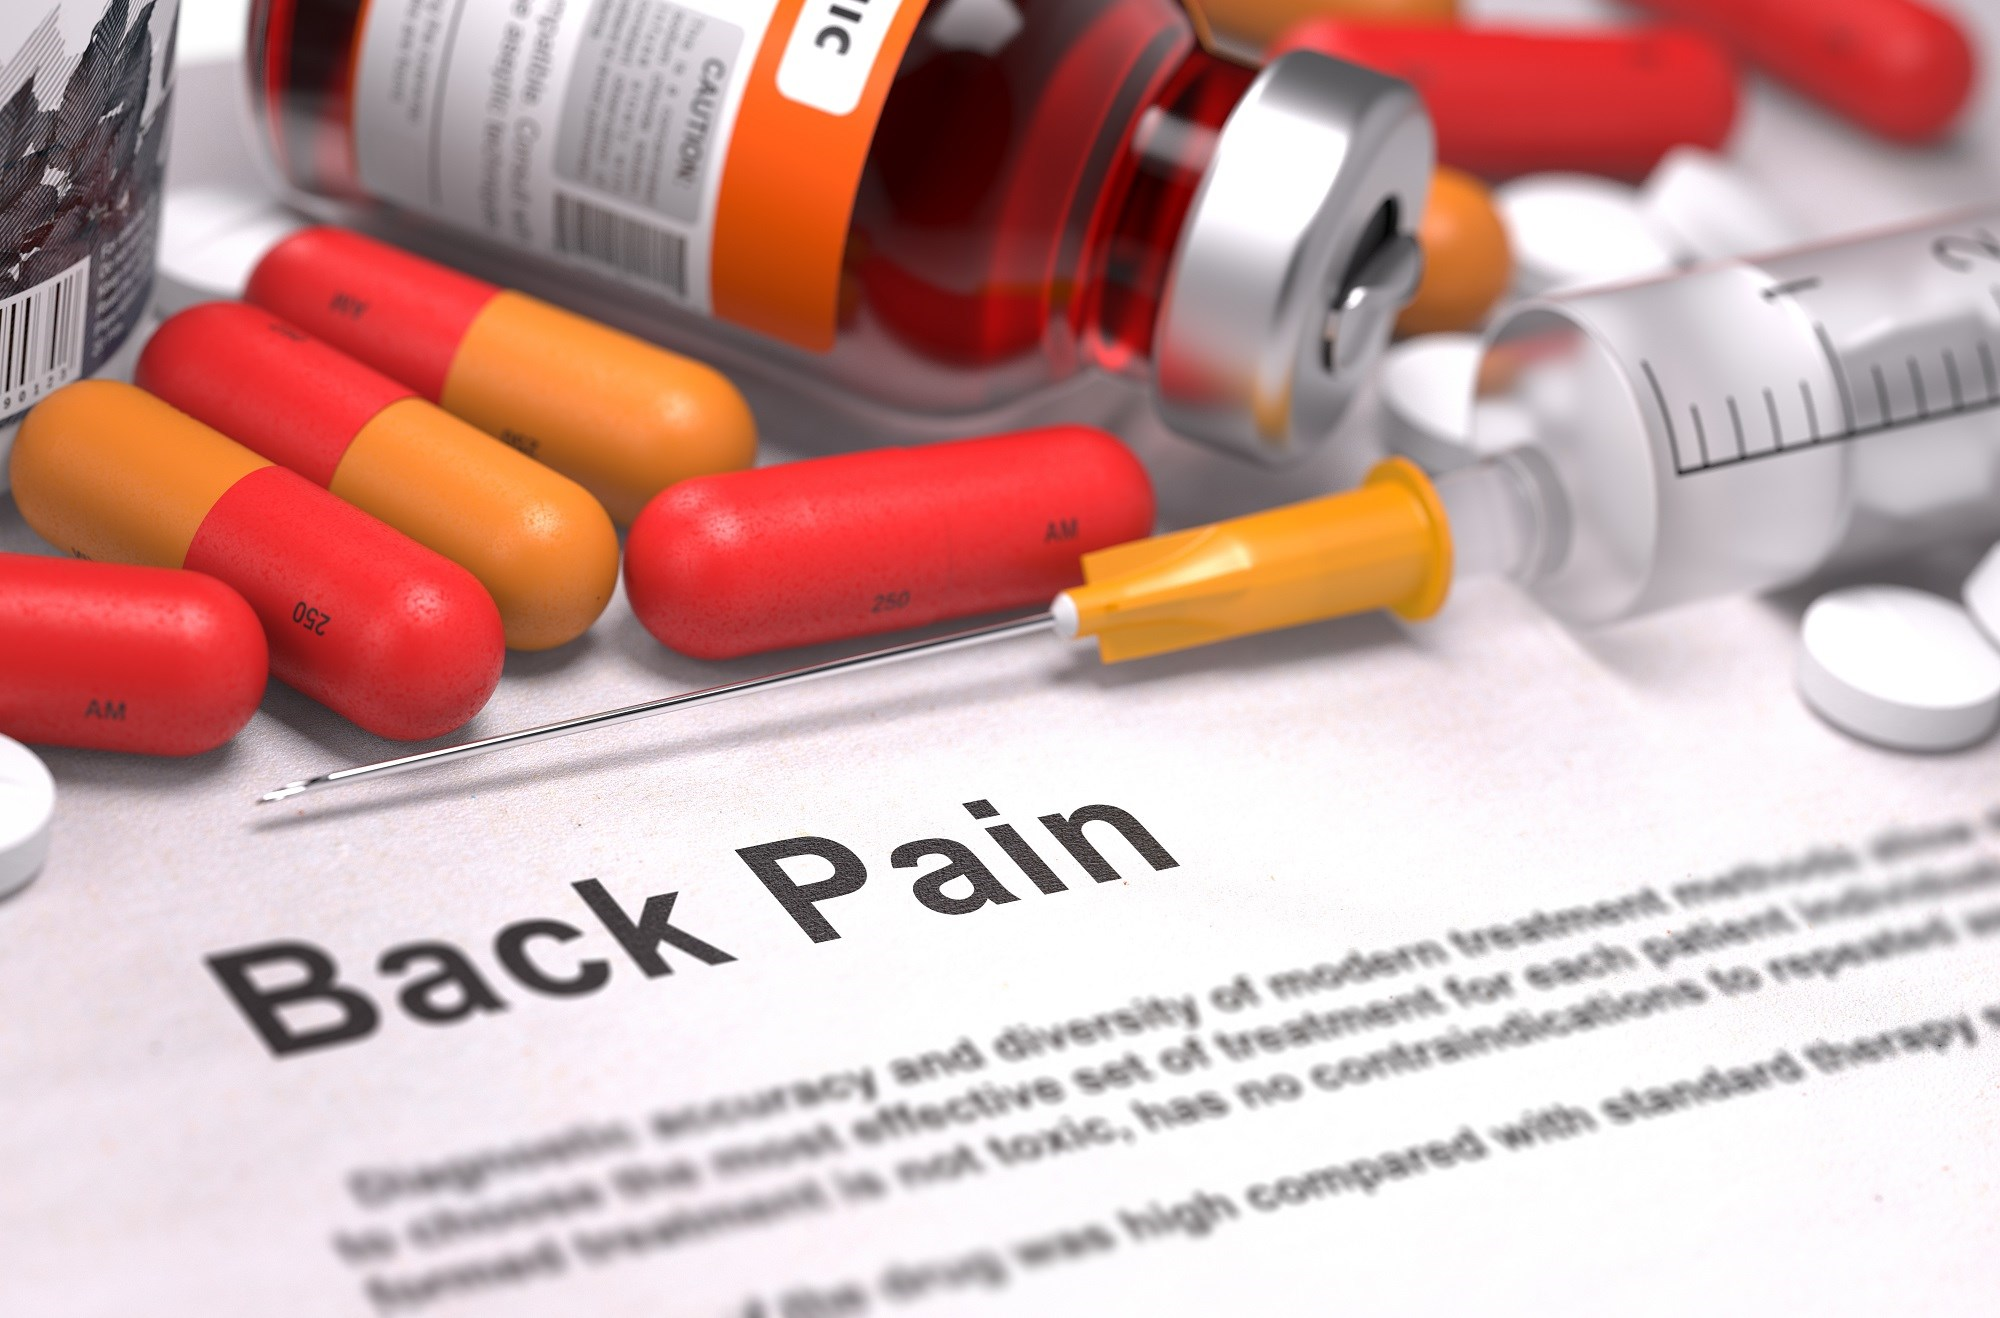 There is a need for public and private insurers to broaden their coverage policies for non-drug pain treatments for low back pain.